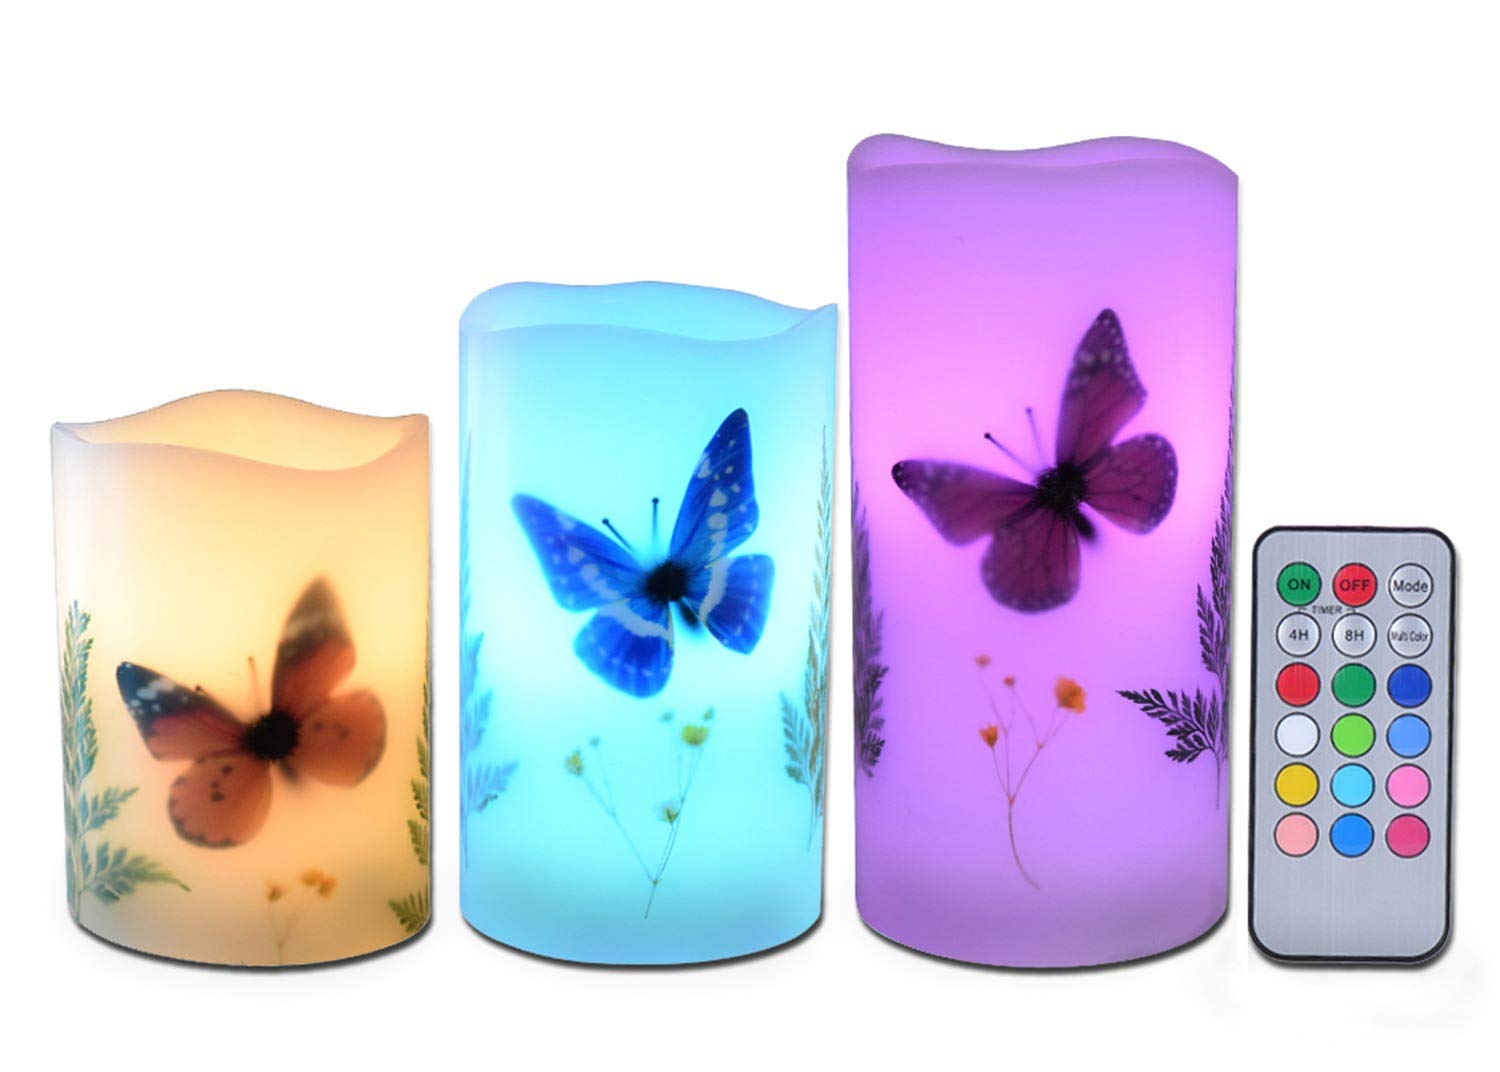 """Candles Set of 3 Flameless 4"""" 5"""" 6"""" Unscented Tealight Butterfly Flower Plants Decor Real Wax Pillar Candle LED Lights 12 Color Changing 4H 8H Timer Remote Control AAA Batteries Operated"""